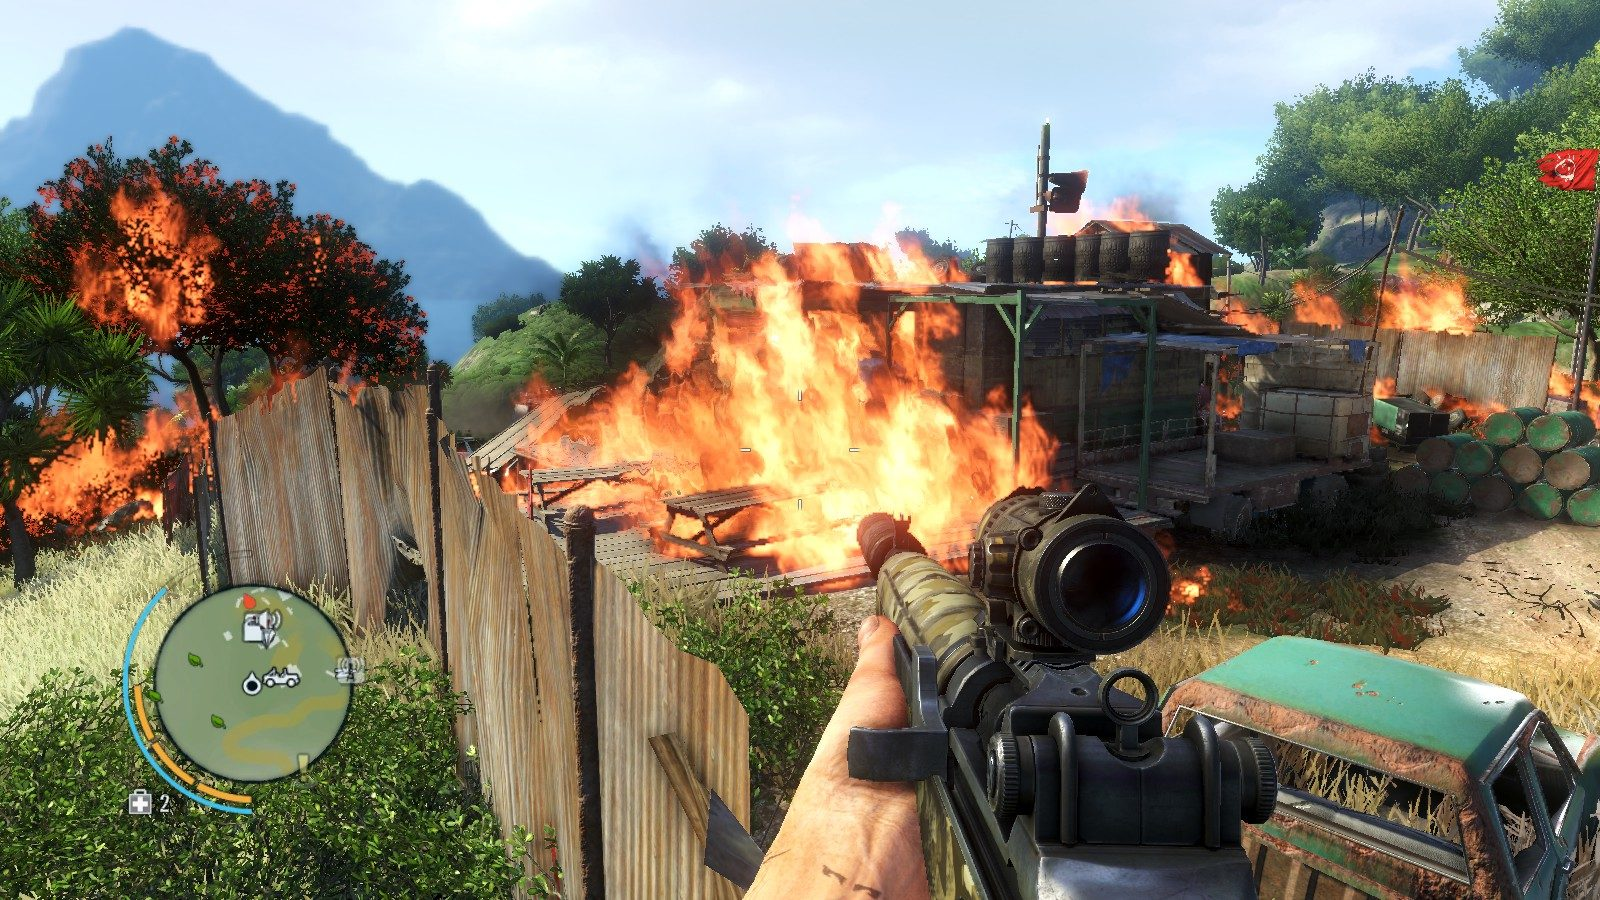 Far Cry 4 Will Take Place In The Himalayas And Let You Ride Farcry4 Pc Game 2012 12 08 00004